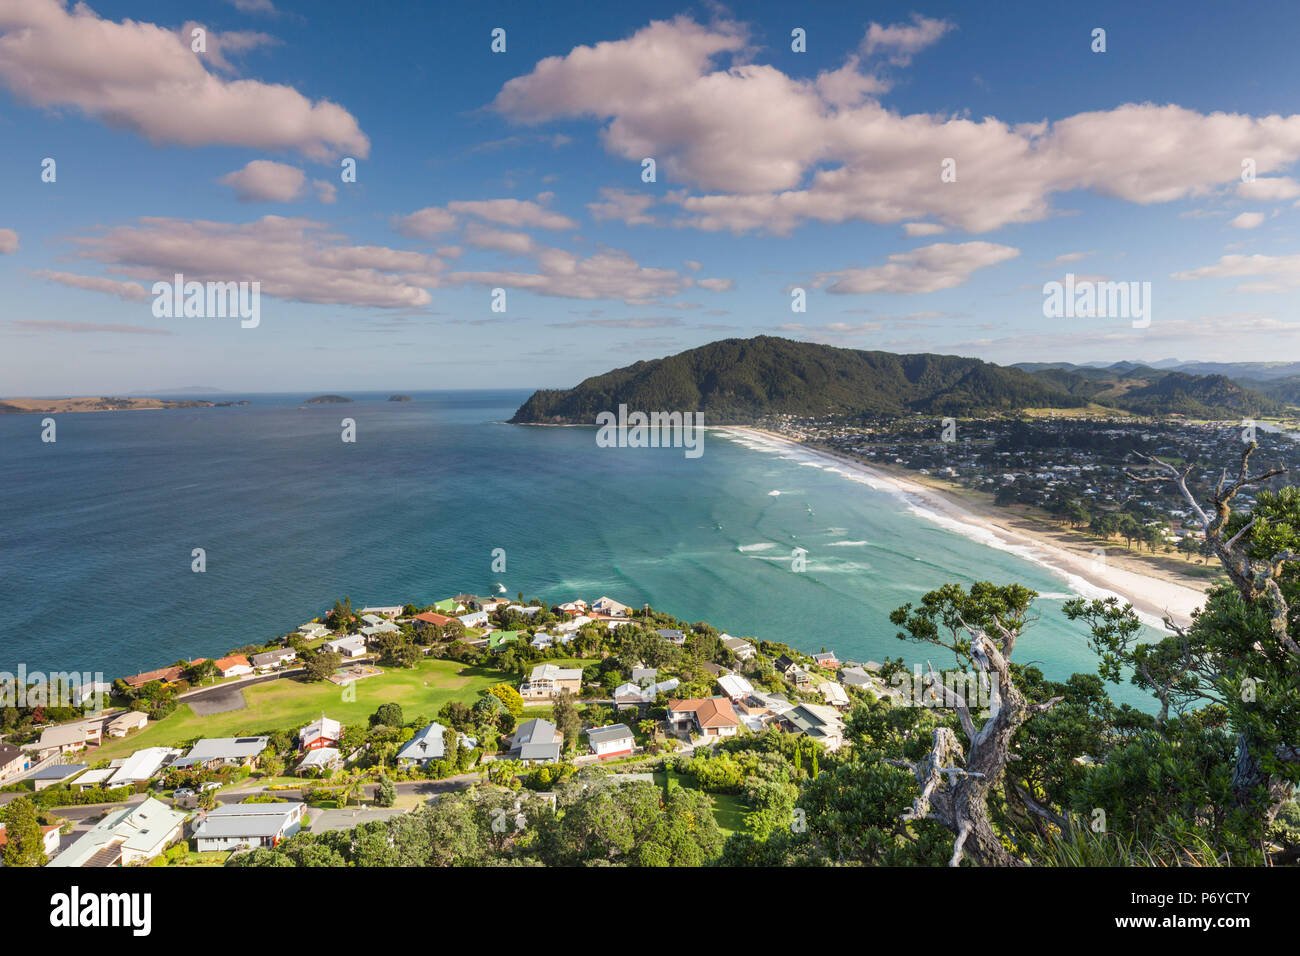 New Zealand, North Island, Coromandel Peninsula, Tairua, elevated view of Pauanui from Paaku Hill - Stock Image